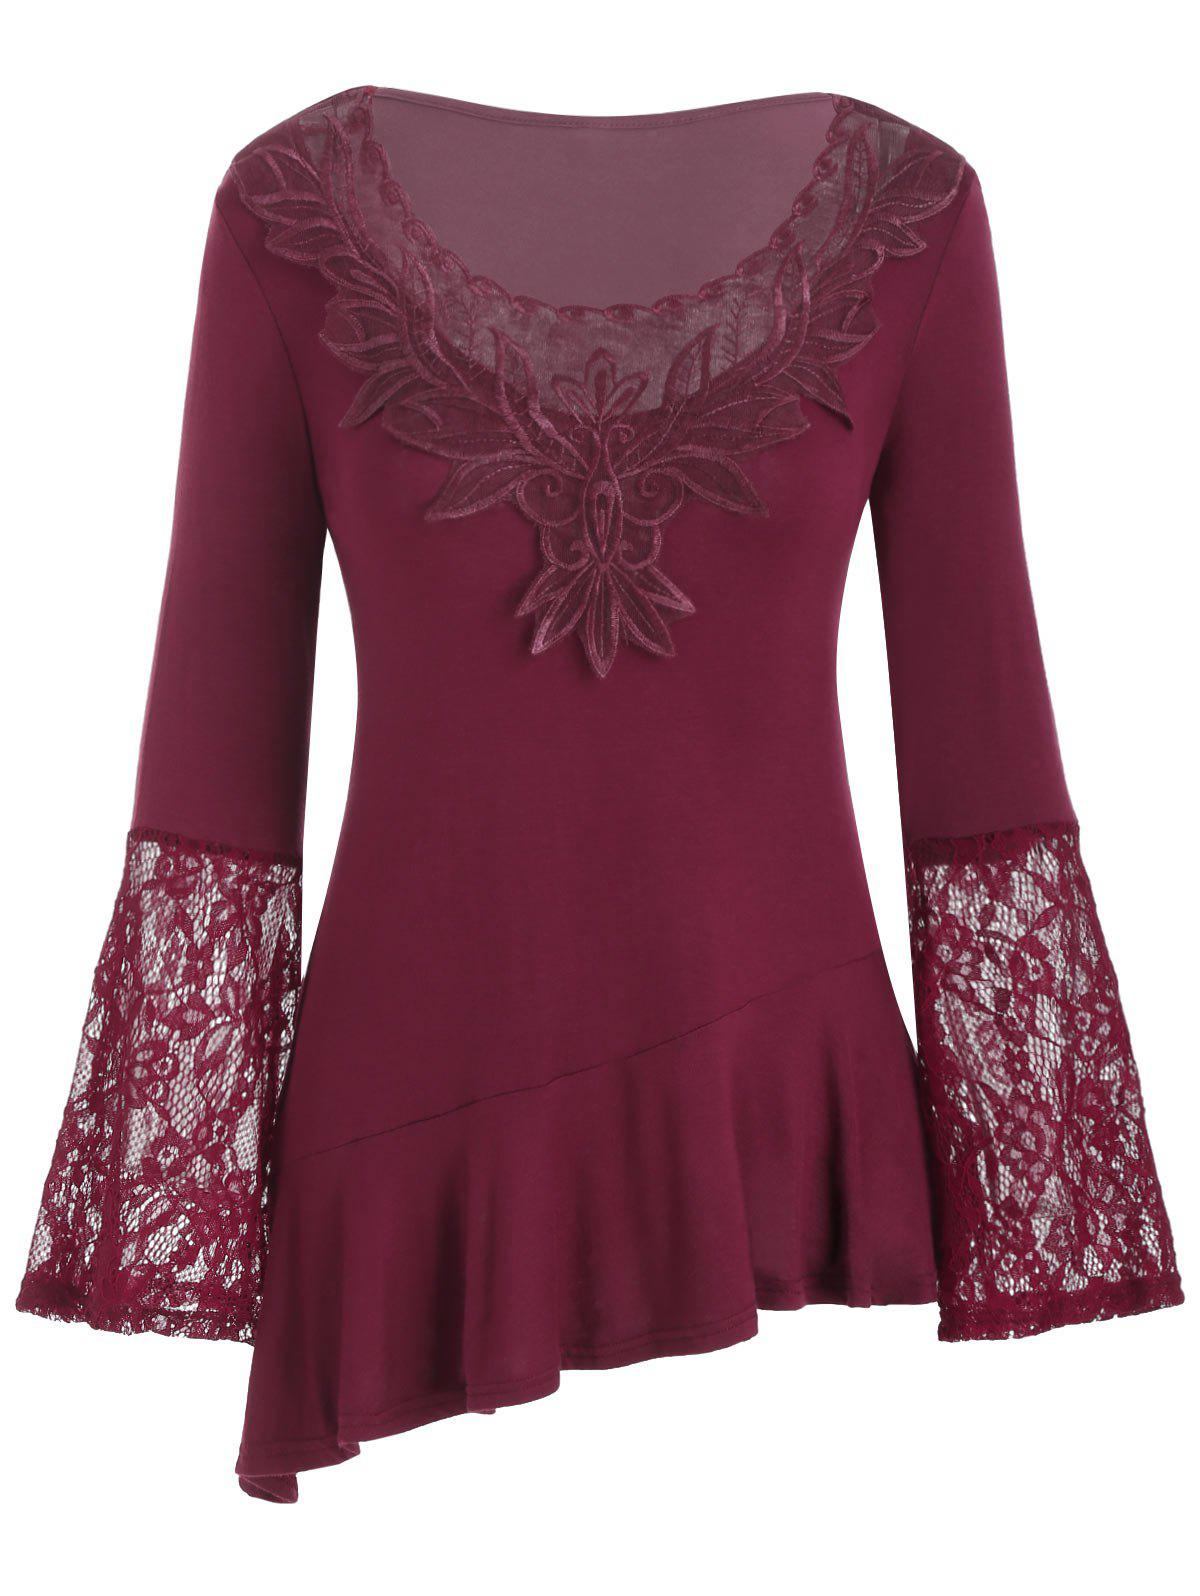 Fancy Mesh Embroidery Lace Panel Flounce Long Sleeve Tee